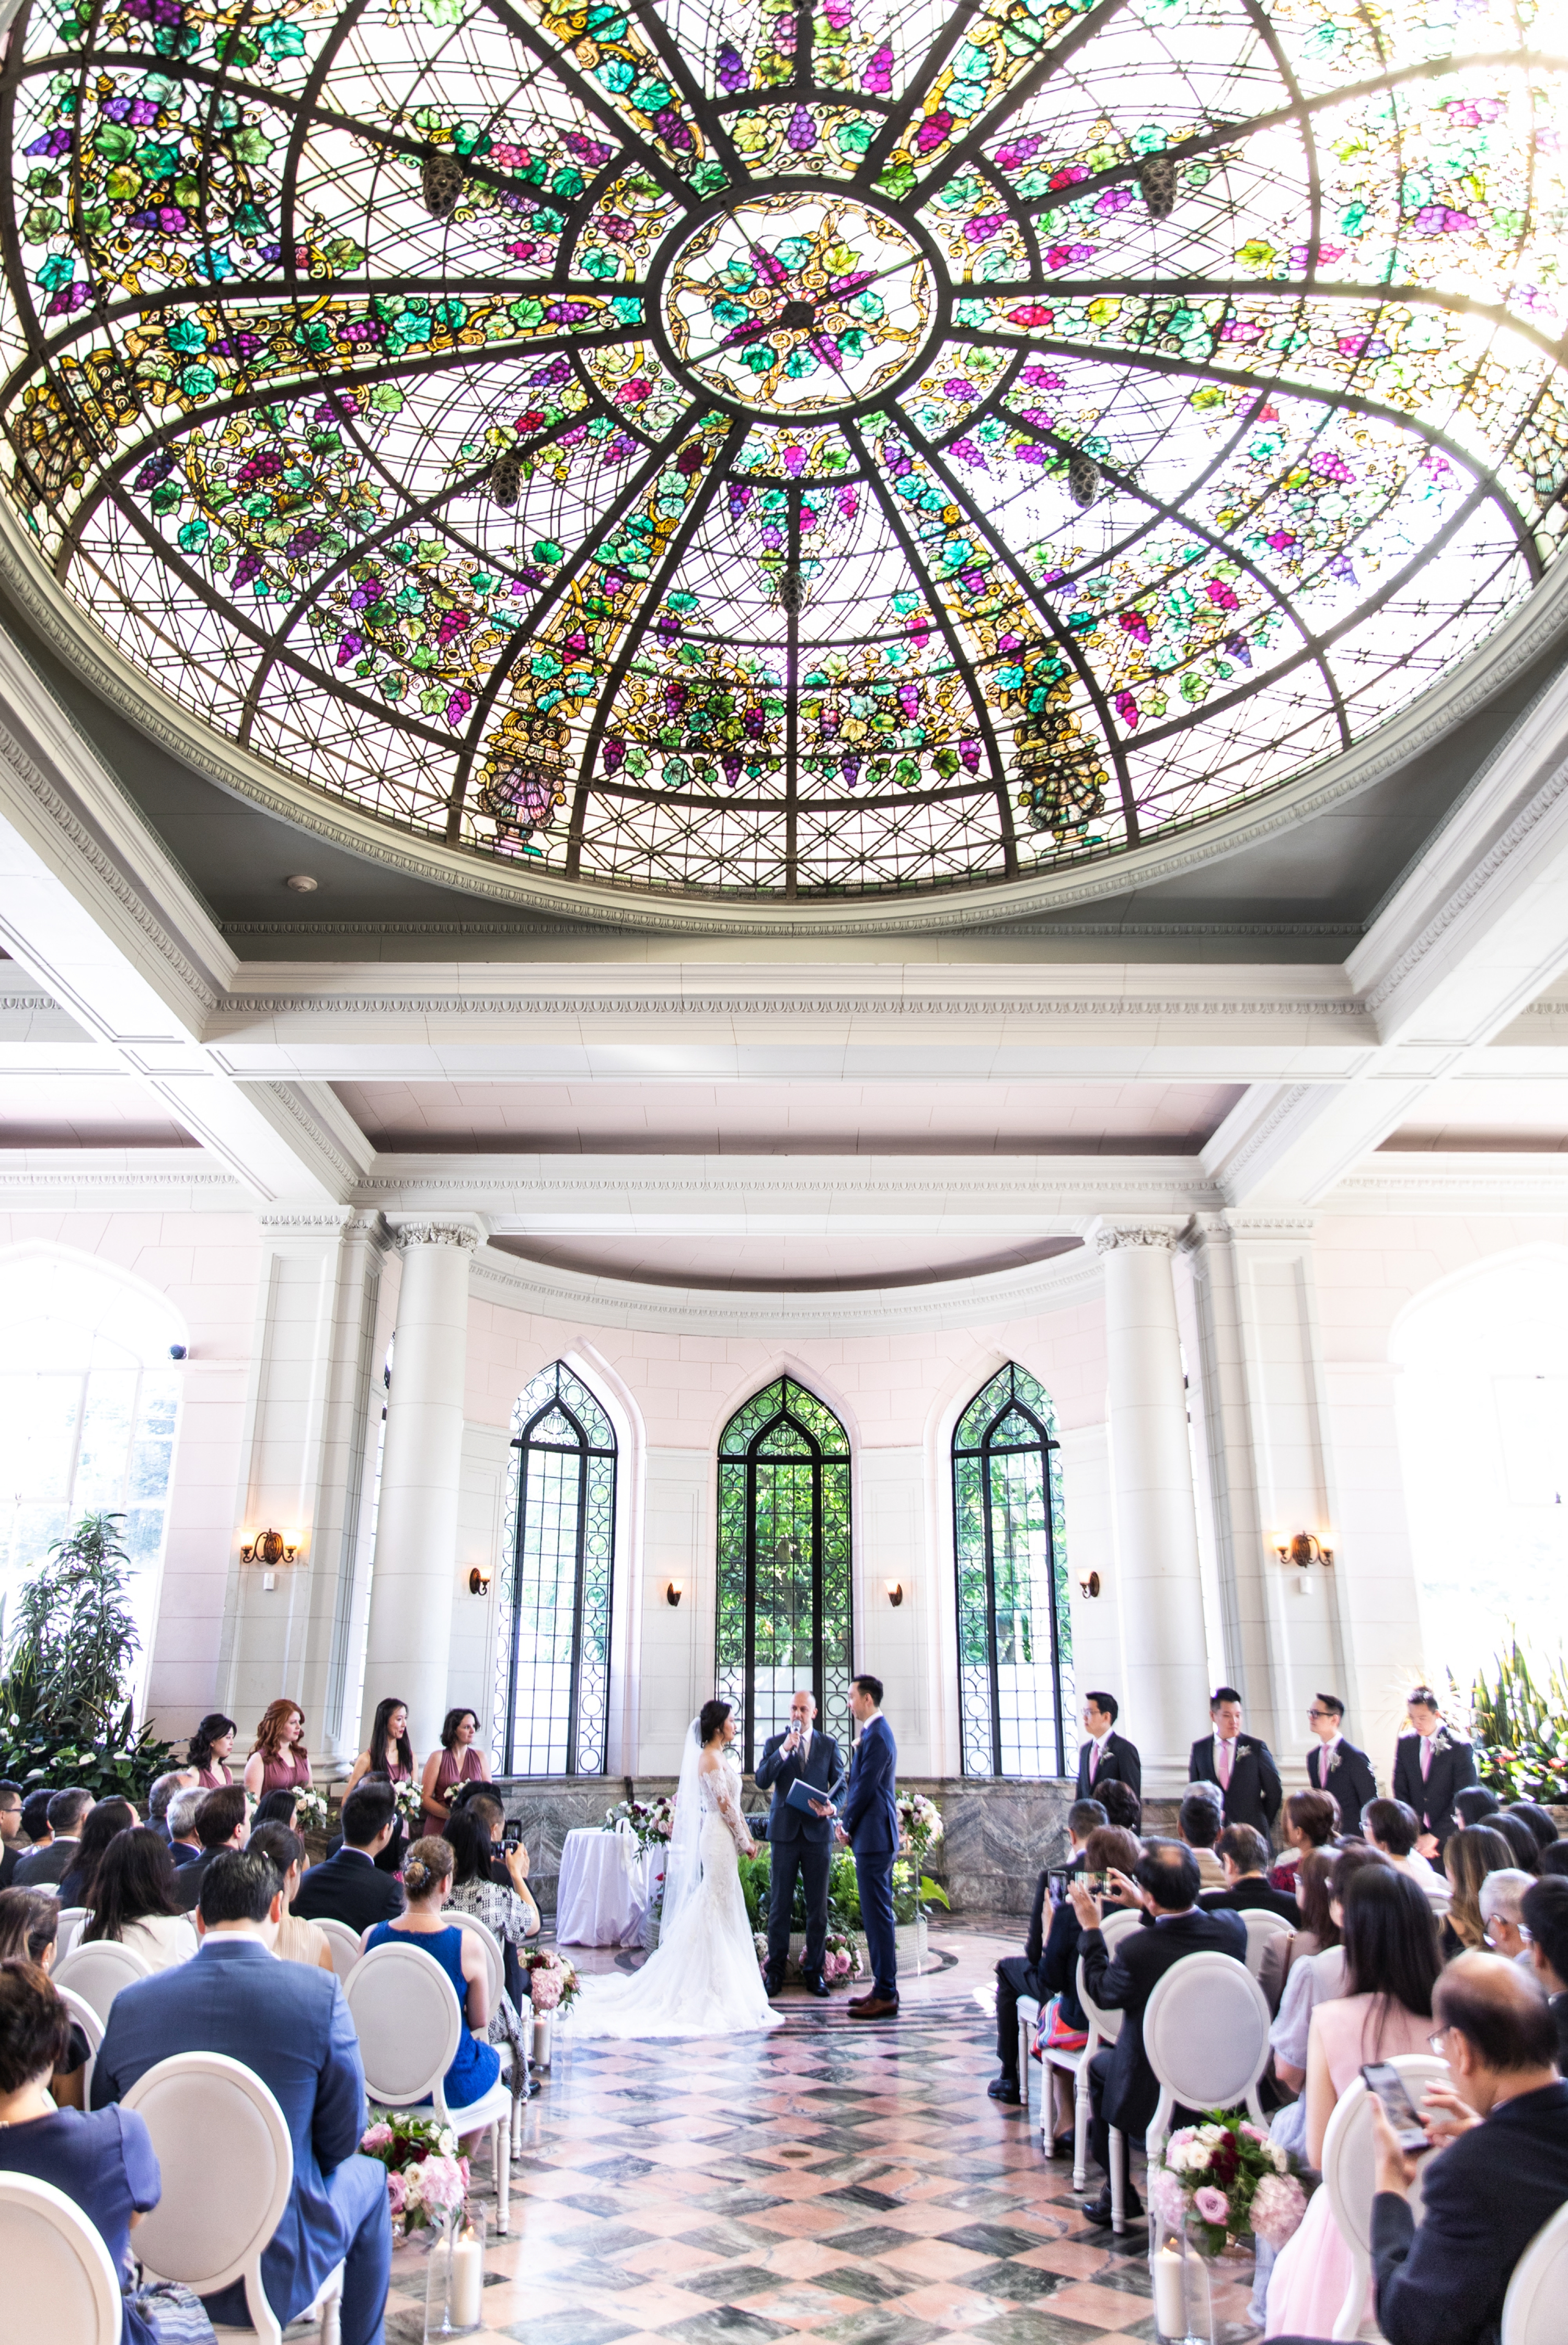 Ceremony Observatory Toronto Casa Loma Four Seasons Chinese Wedding Zsuzsi Pal Photography Cindy Brian